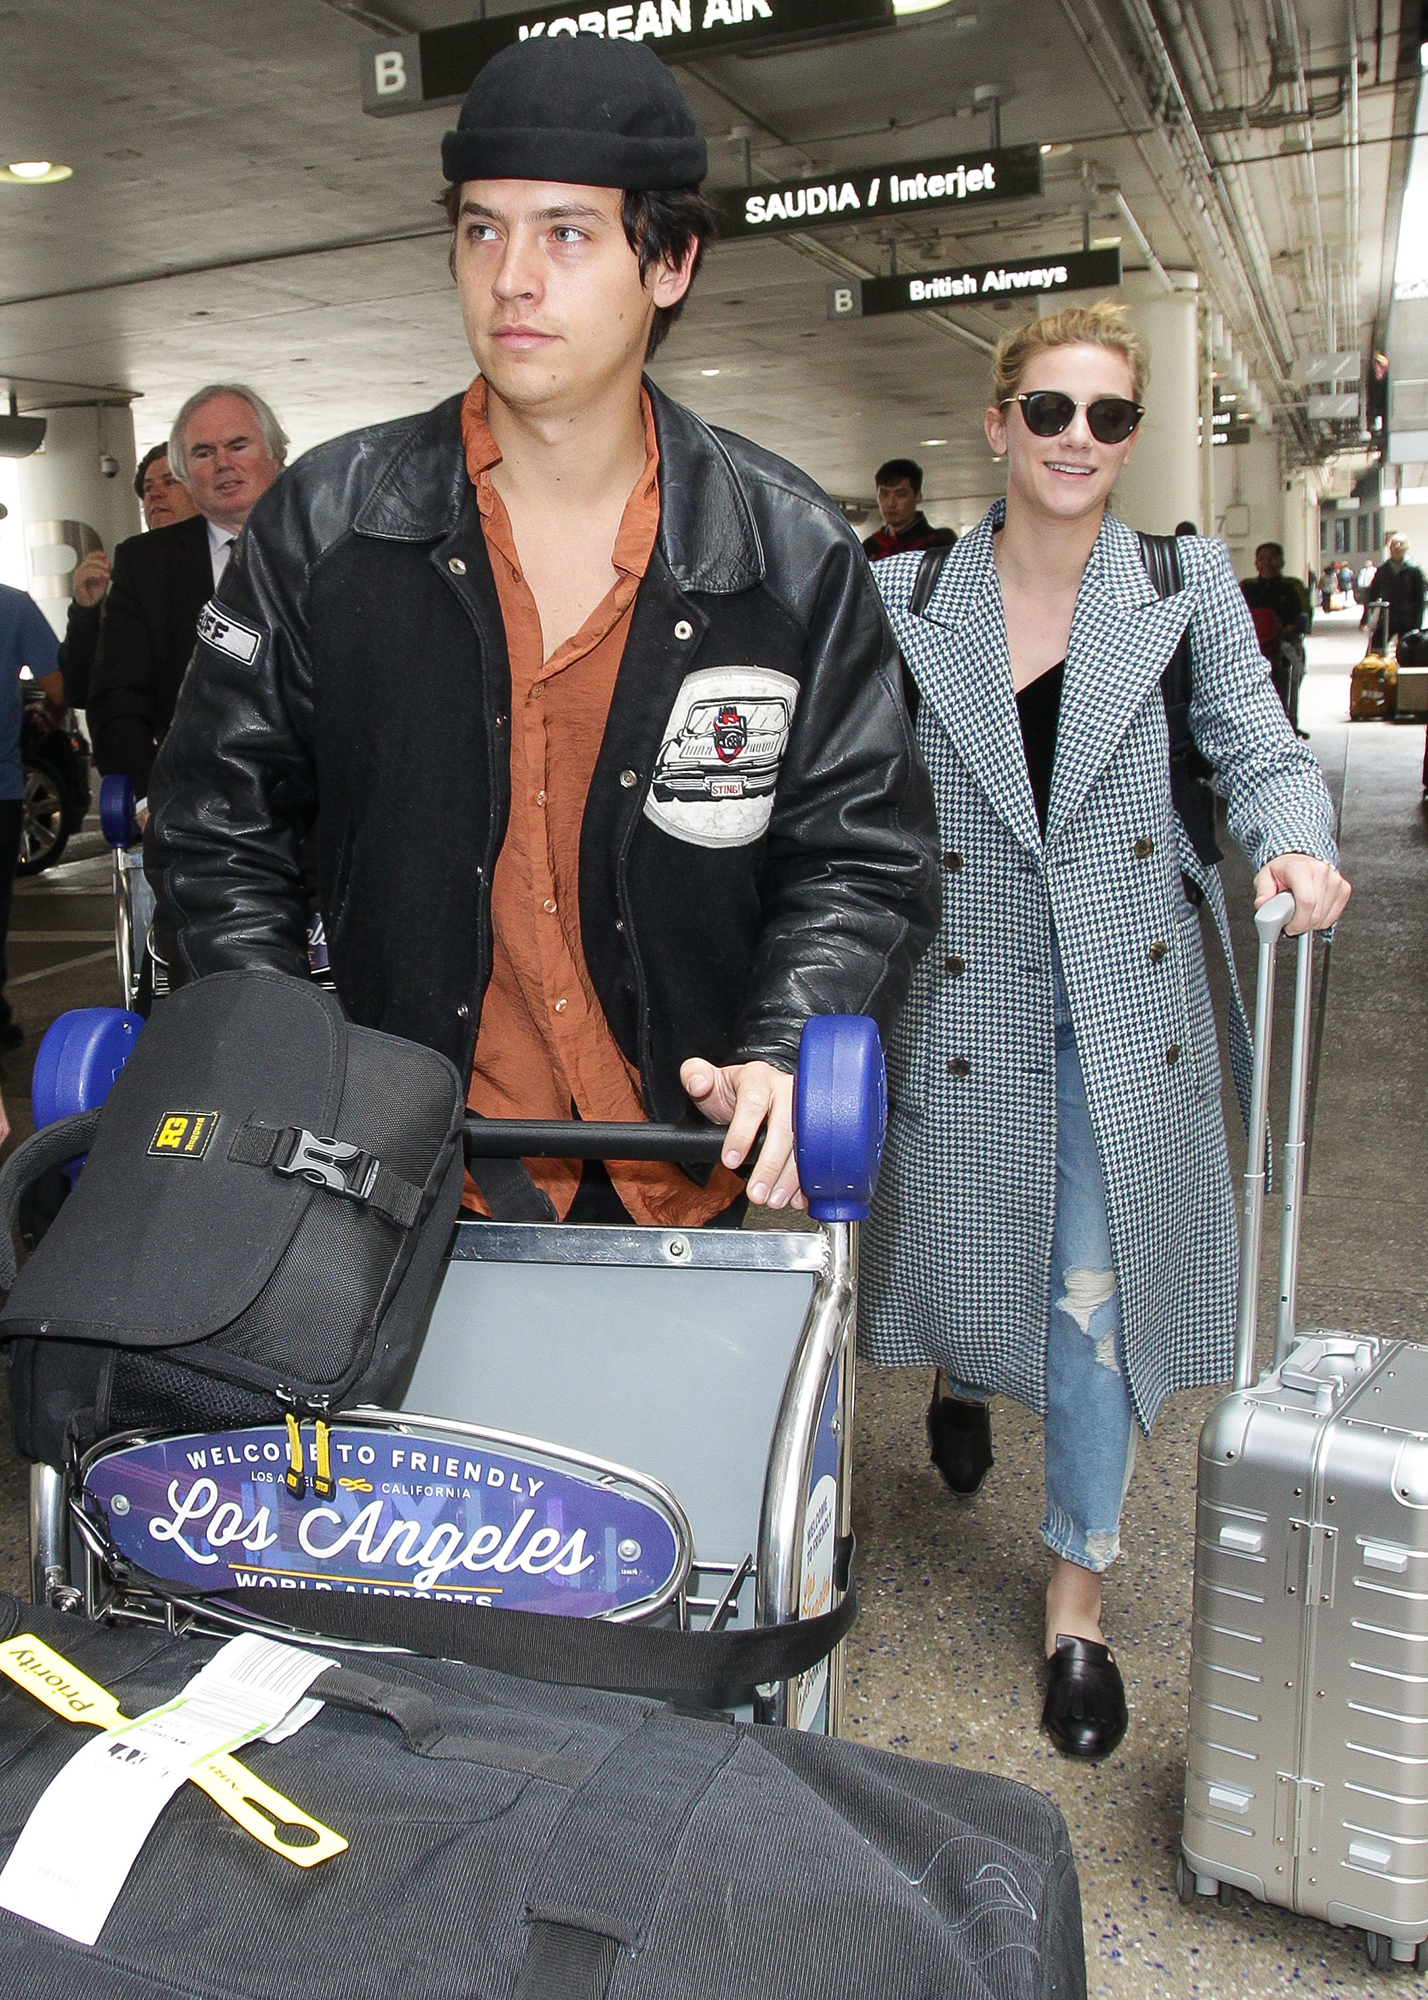 Lili Reinhart and Cole Sprouse Relationship Timeline - The twosome packed on the PDA during a trip to Paris in April 2018. Later that month, they were seen enjoying a trip to Mexico.